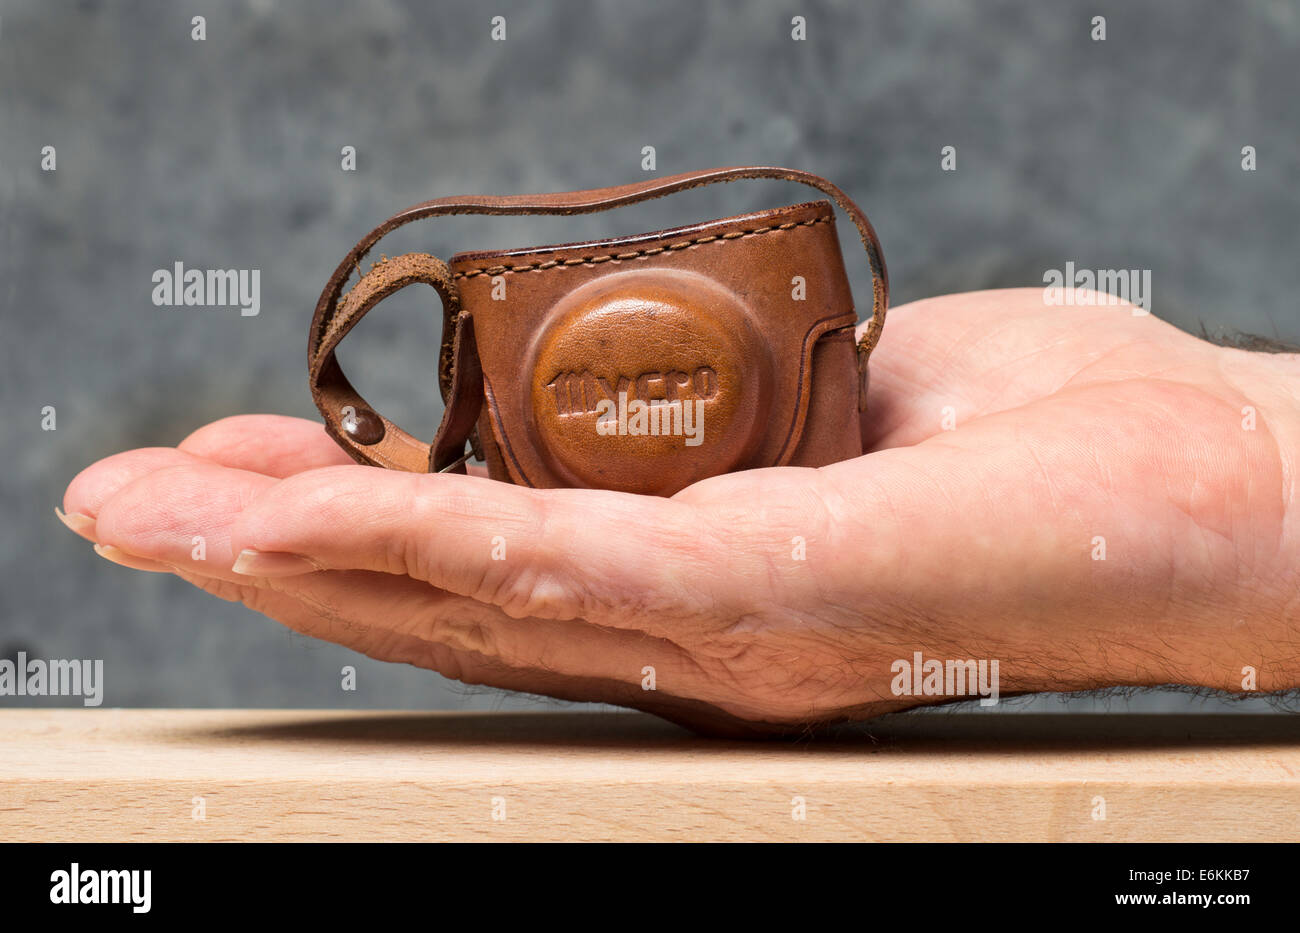 Mycro subminiature sub miniature camera in it's case on a man's hand - Stock Image